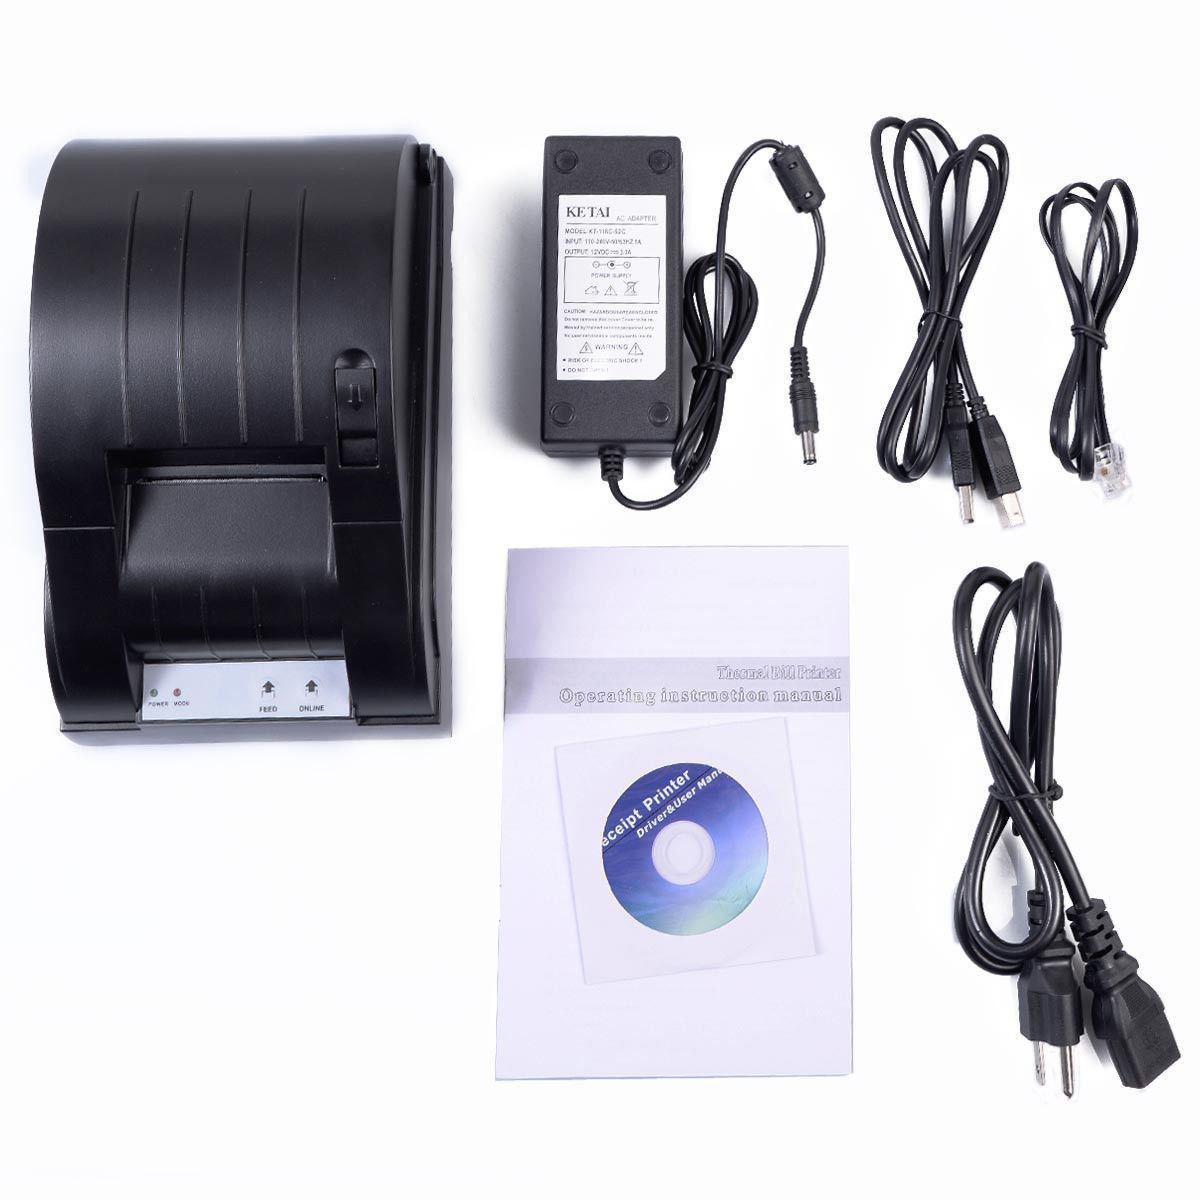 Picture of Thermal Dot Receipt Printer Set + Electronic Cash Drawer Roll Paper USB 58mm POS